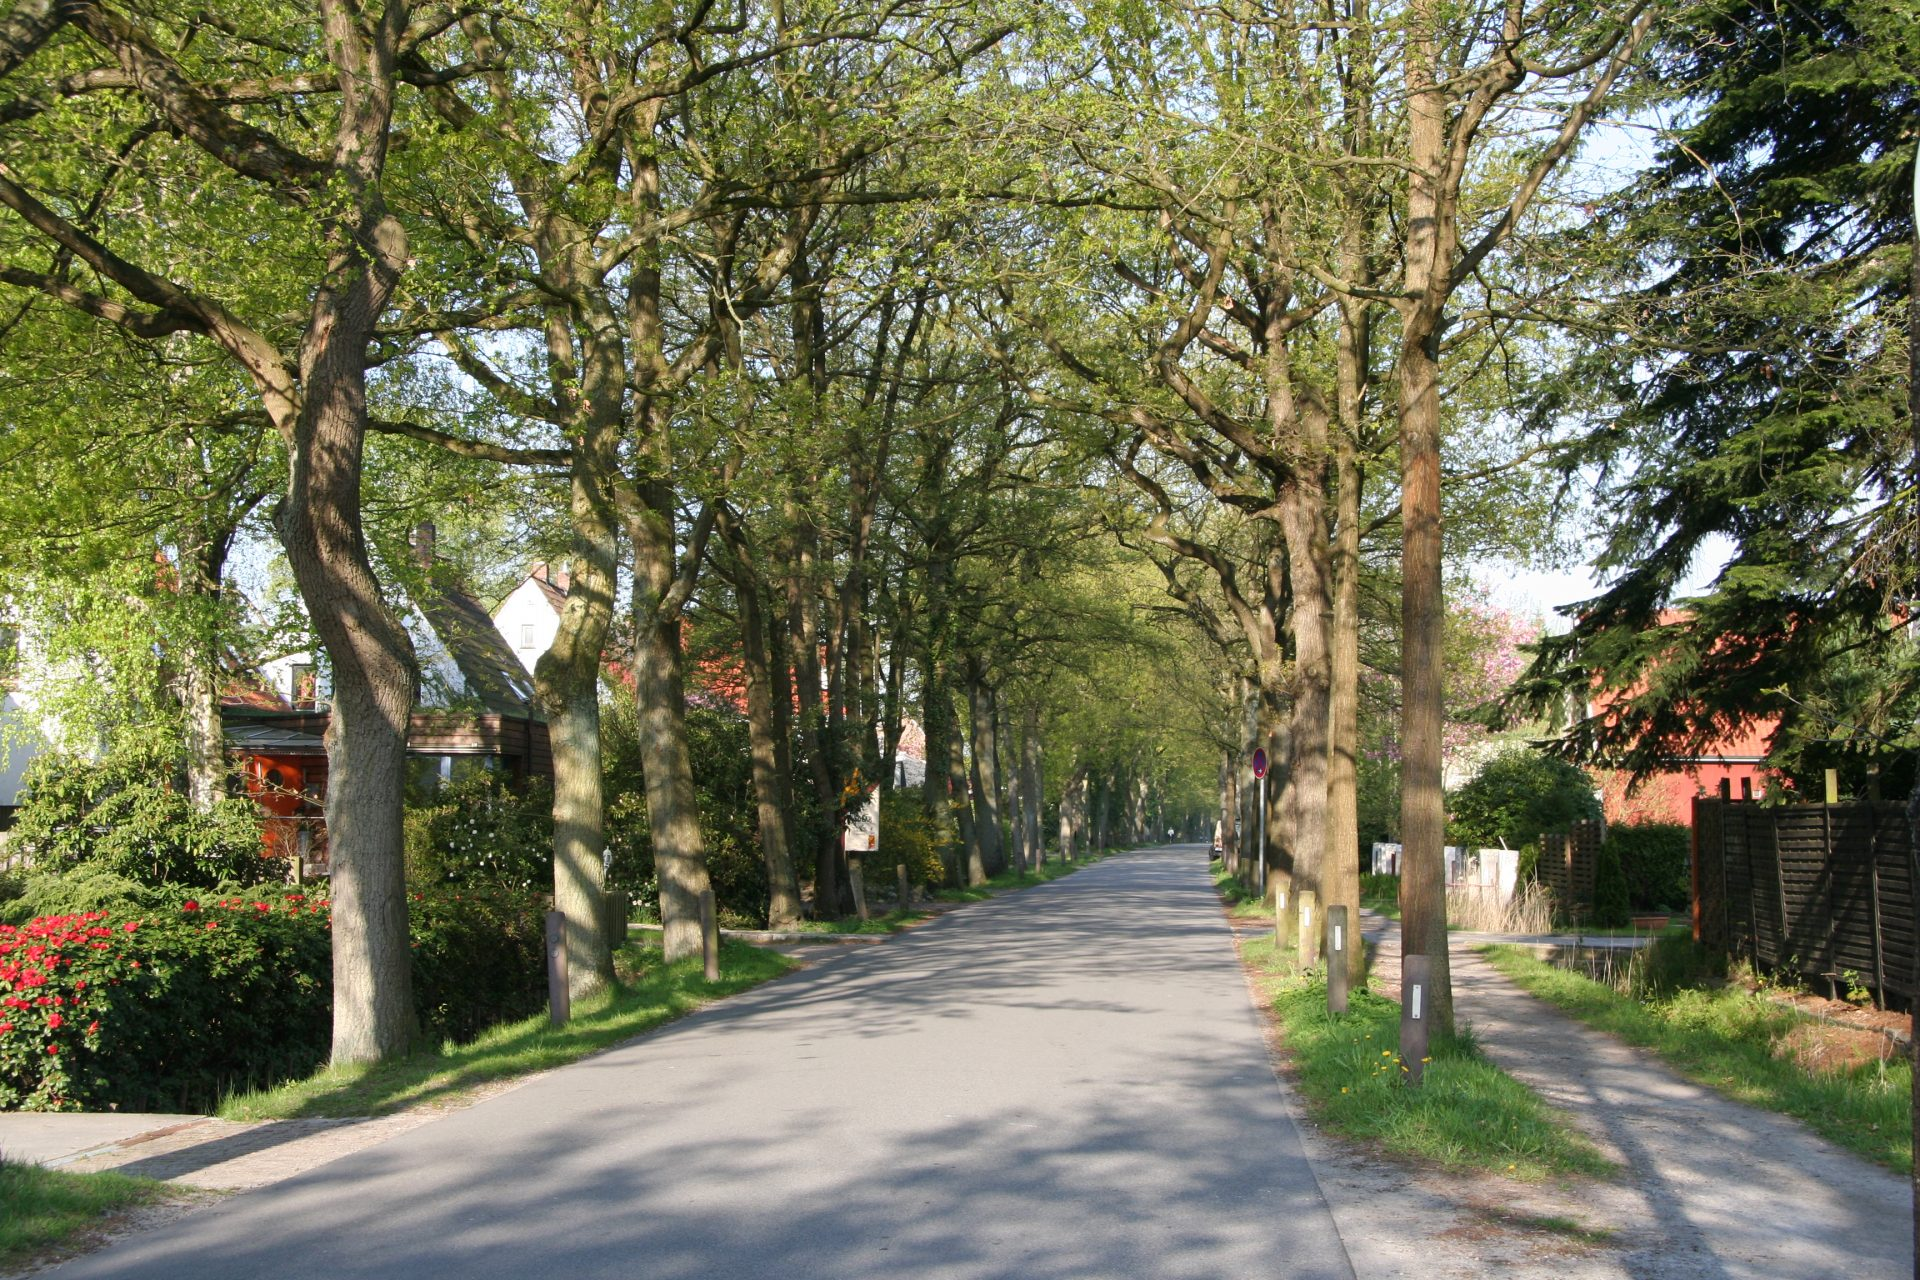 Sessile oak trees (Quercus petraea) along the Drögen-Hasen-Weg Eichenallee, Oldenburg, Germany. Here they are just beginning to show their new green spring leaves, May 2013. Photo by Heidi Meudt.